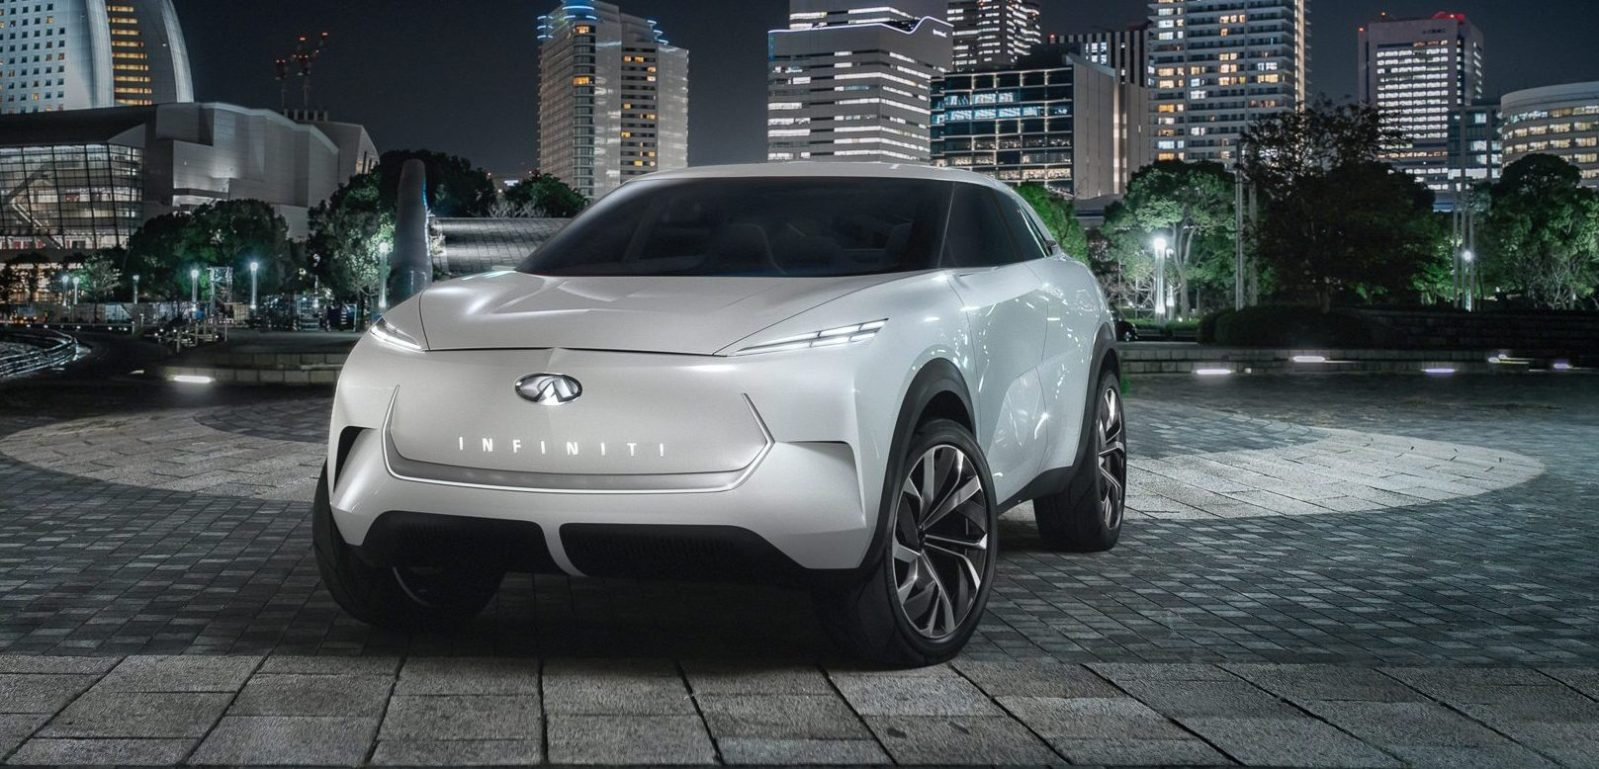 INFINITI unveils the design of its first all-electric SUV ...